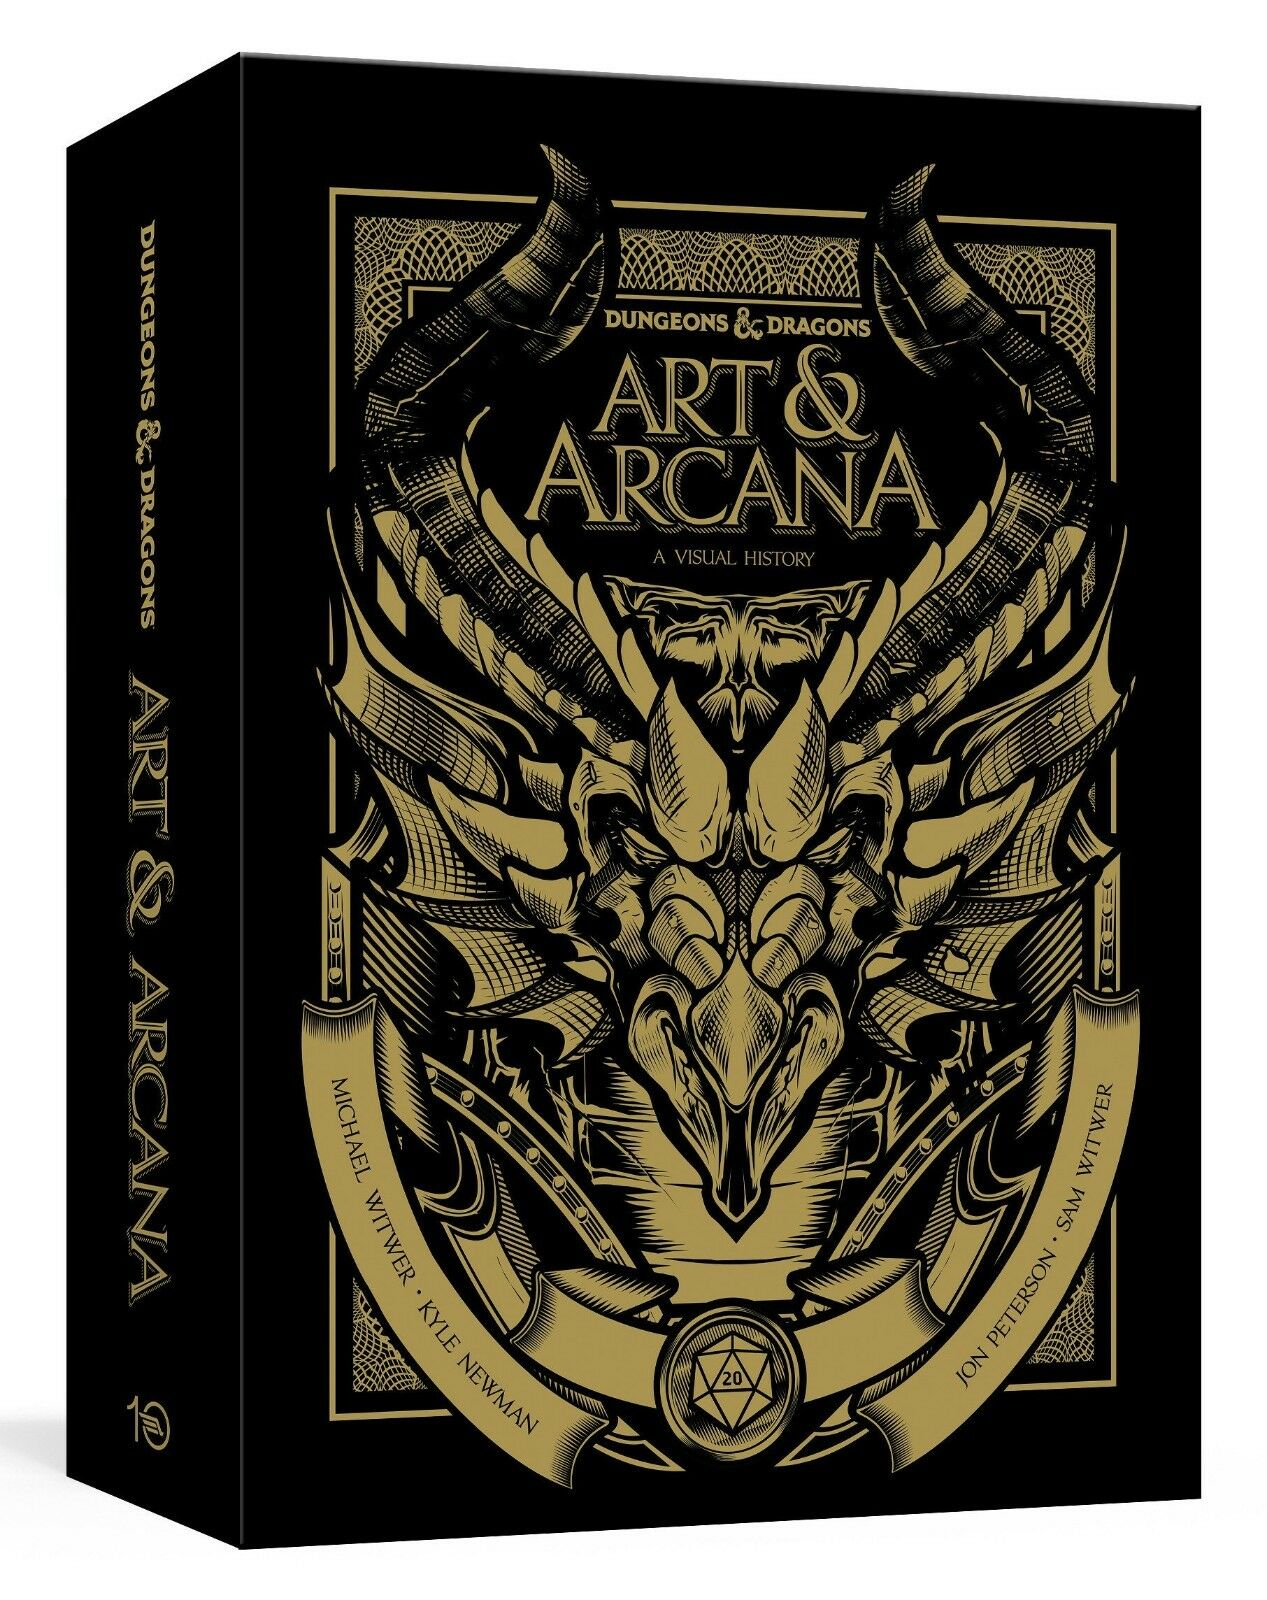 Dungeons and Dragons Art and Arcana Special Edition Boxed Book & Ephemera Set